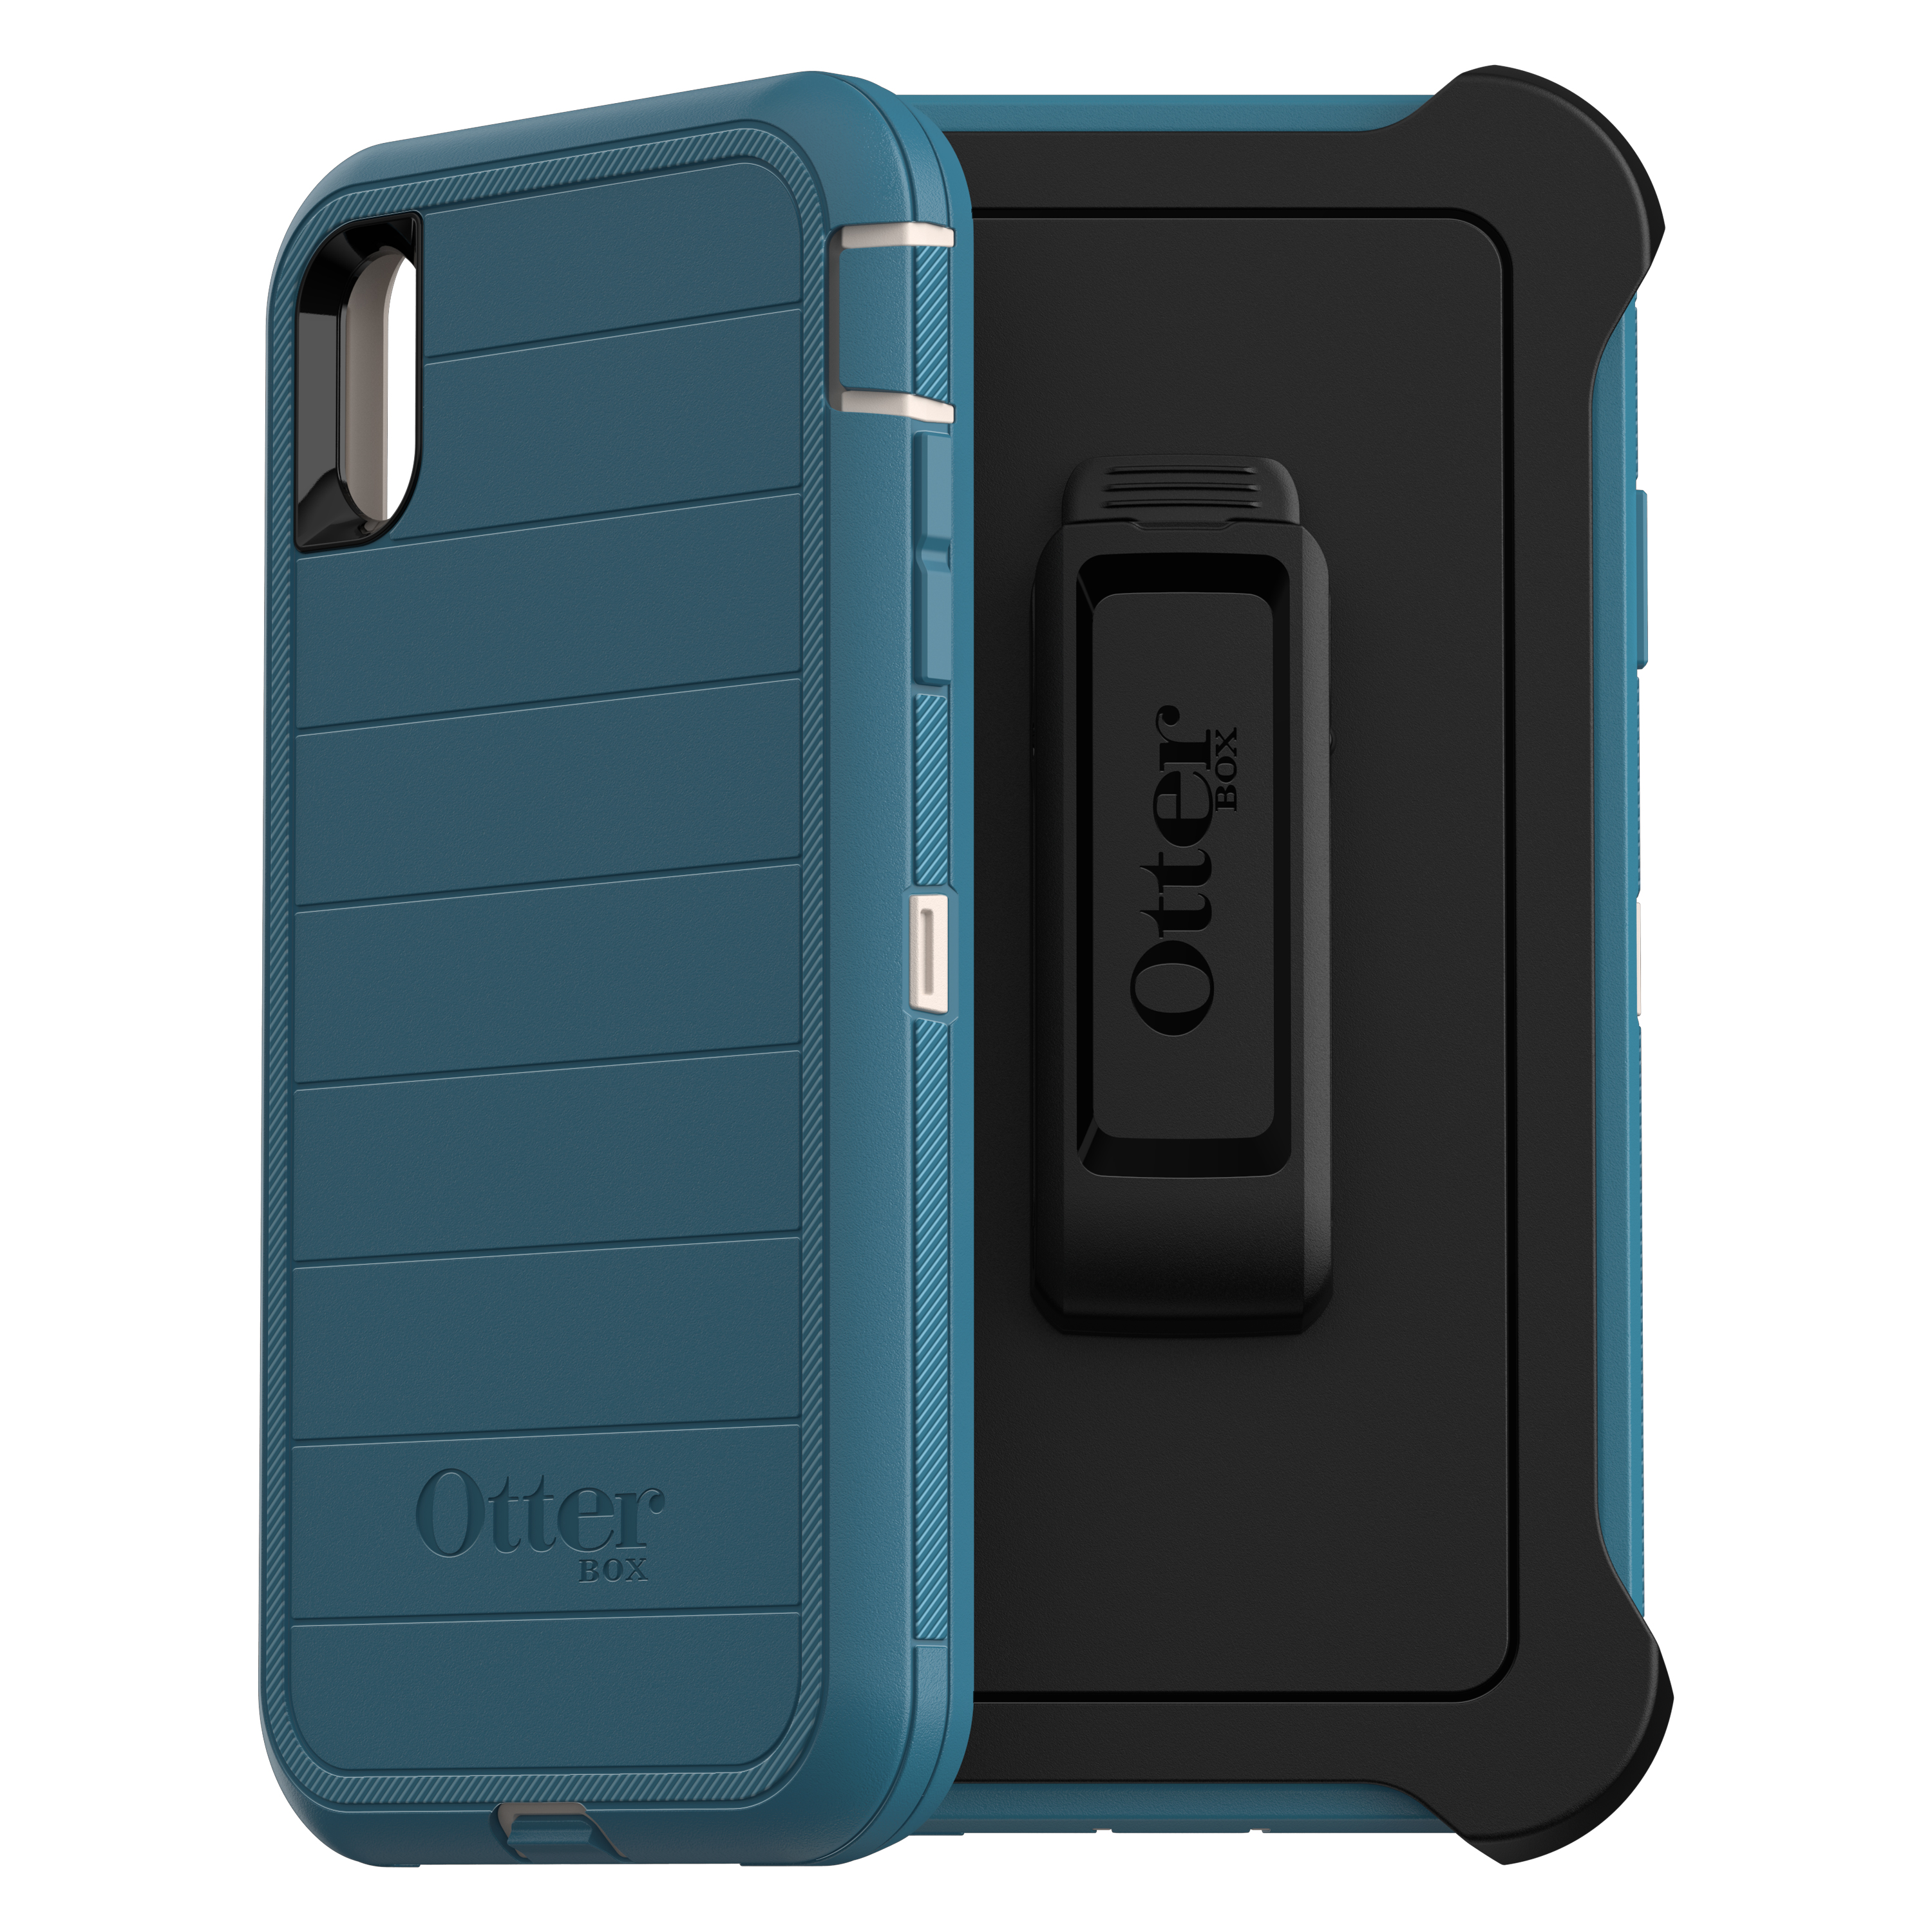 OtterBox Defender Series Pro Case for iPhone XS Max, Big Sur